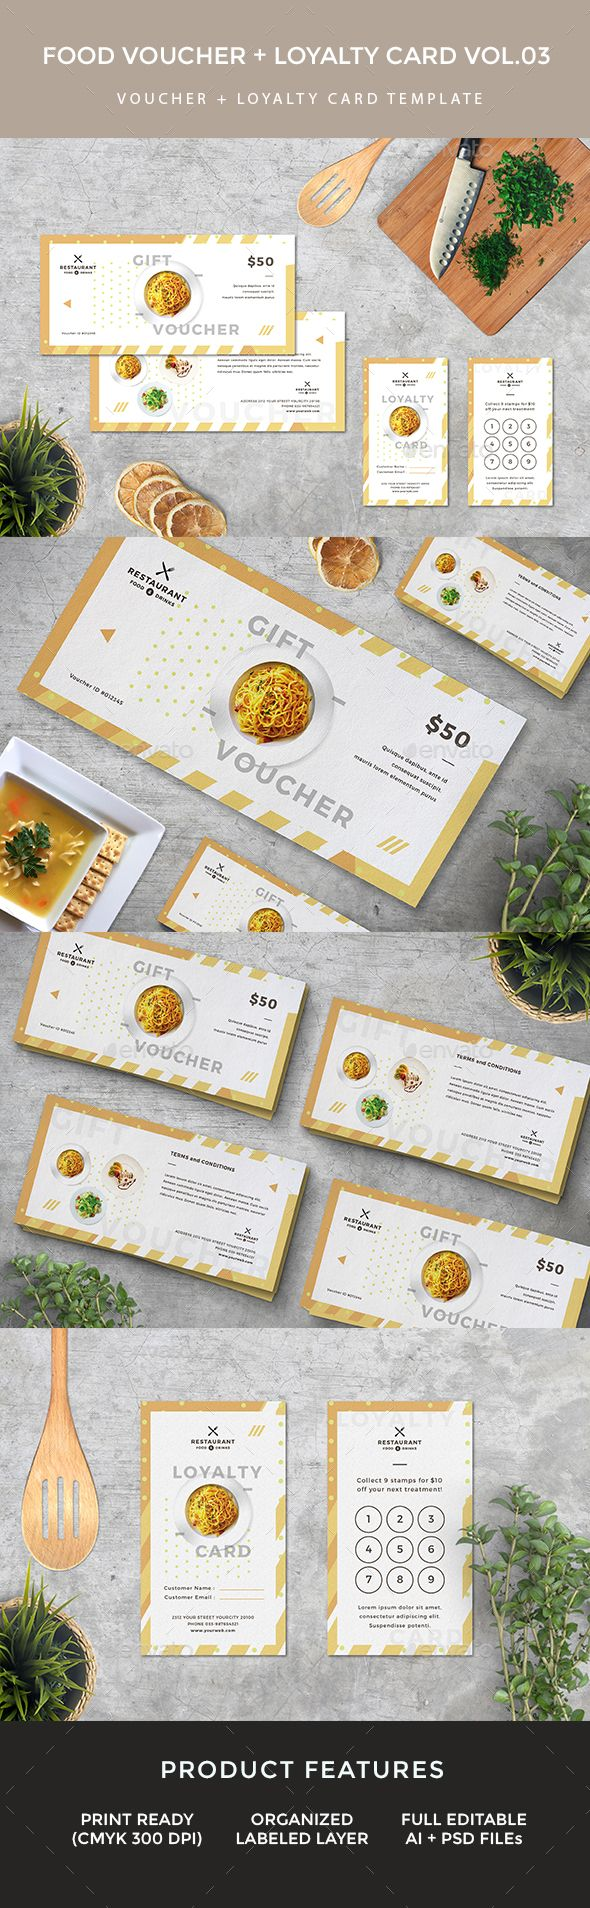 Gift Voucher Loyalty Card Template PSD, AI Illustrator